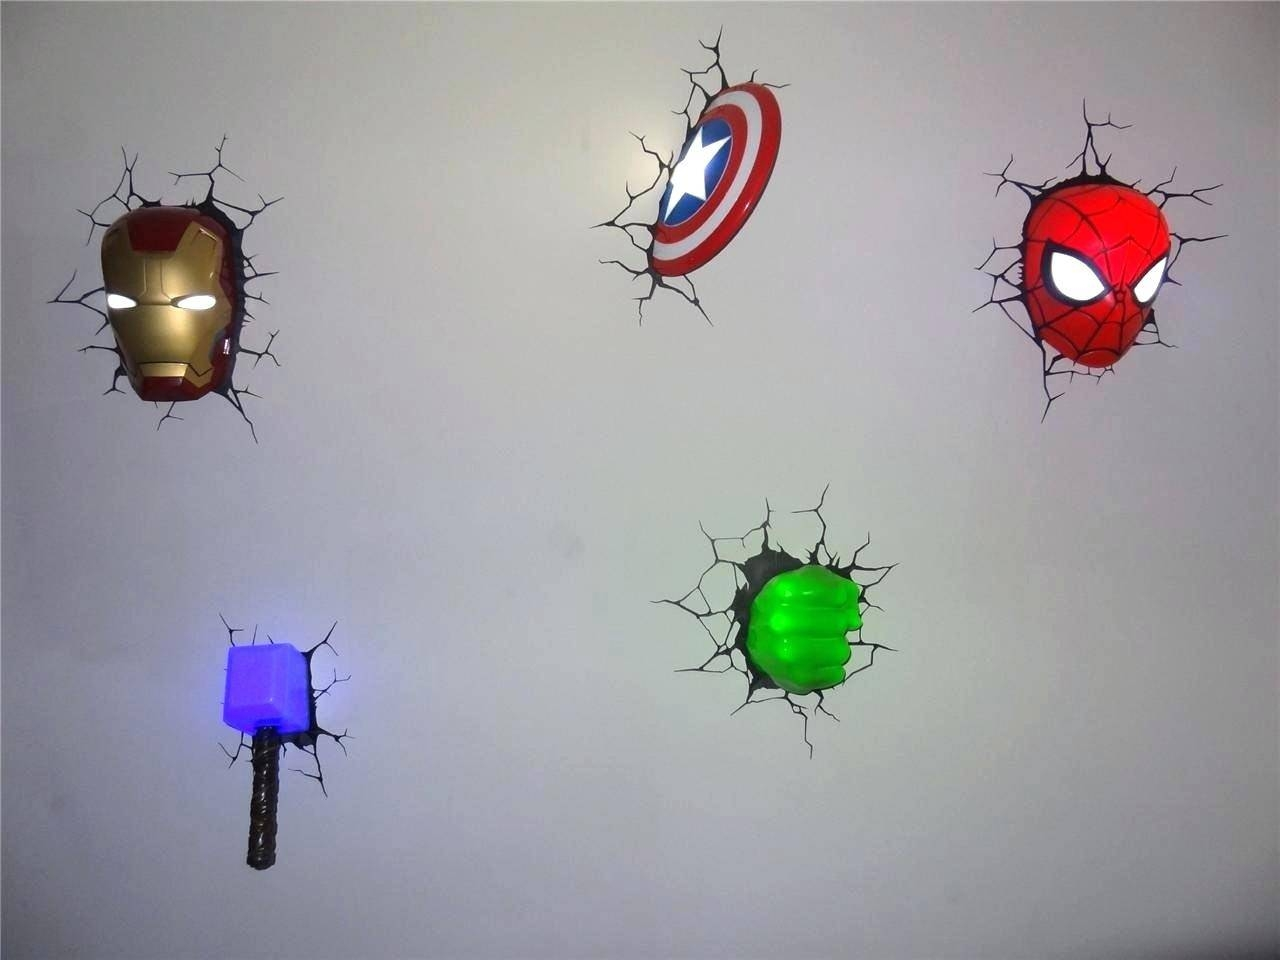 Ironman Wall Light Avengers With Marvel Art Night S Combo Iron Man Intended For Recent 3D Wall Art Iron Man Night Light (Gallery 10 of 20)